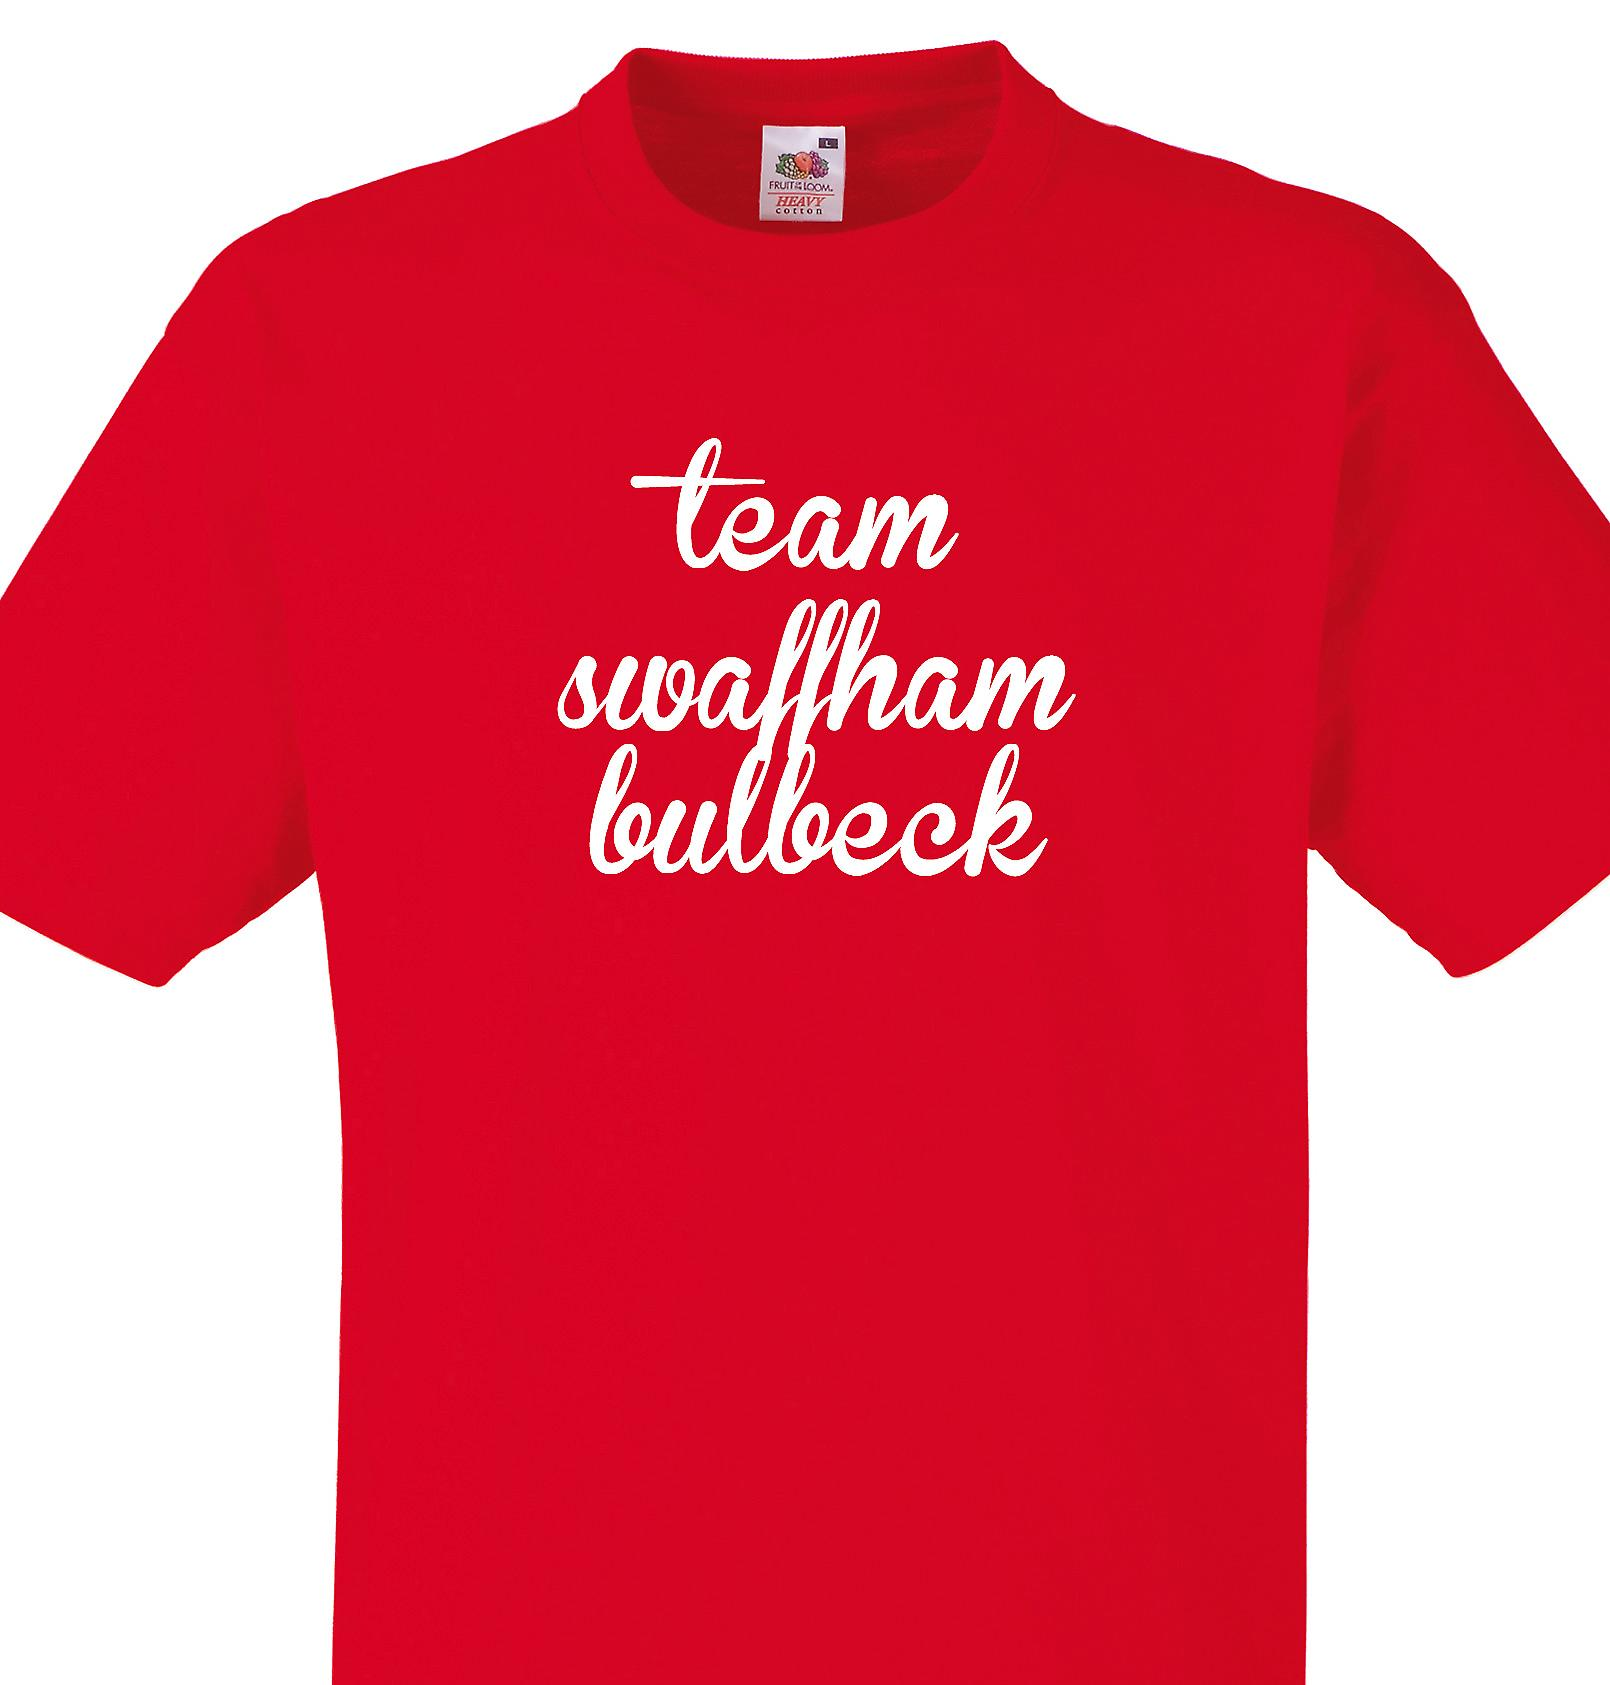 Team Swaffham bulbeck Red T shirt